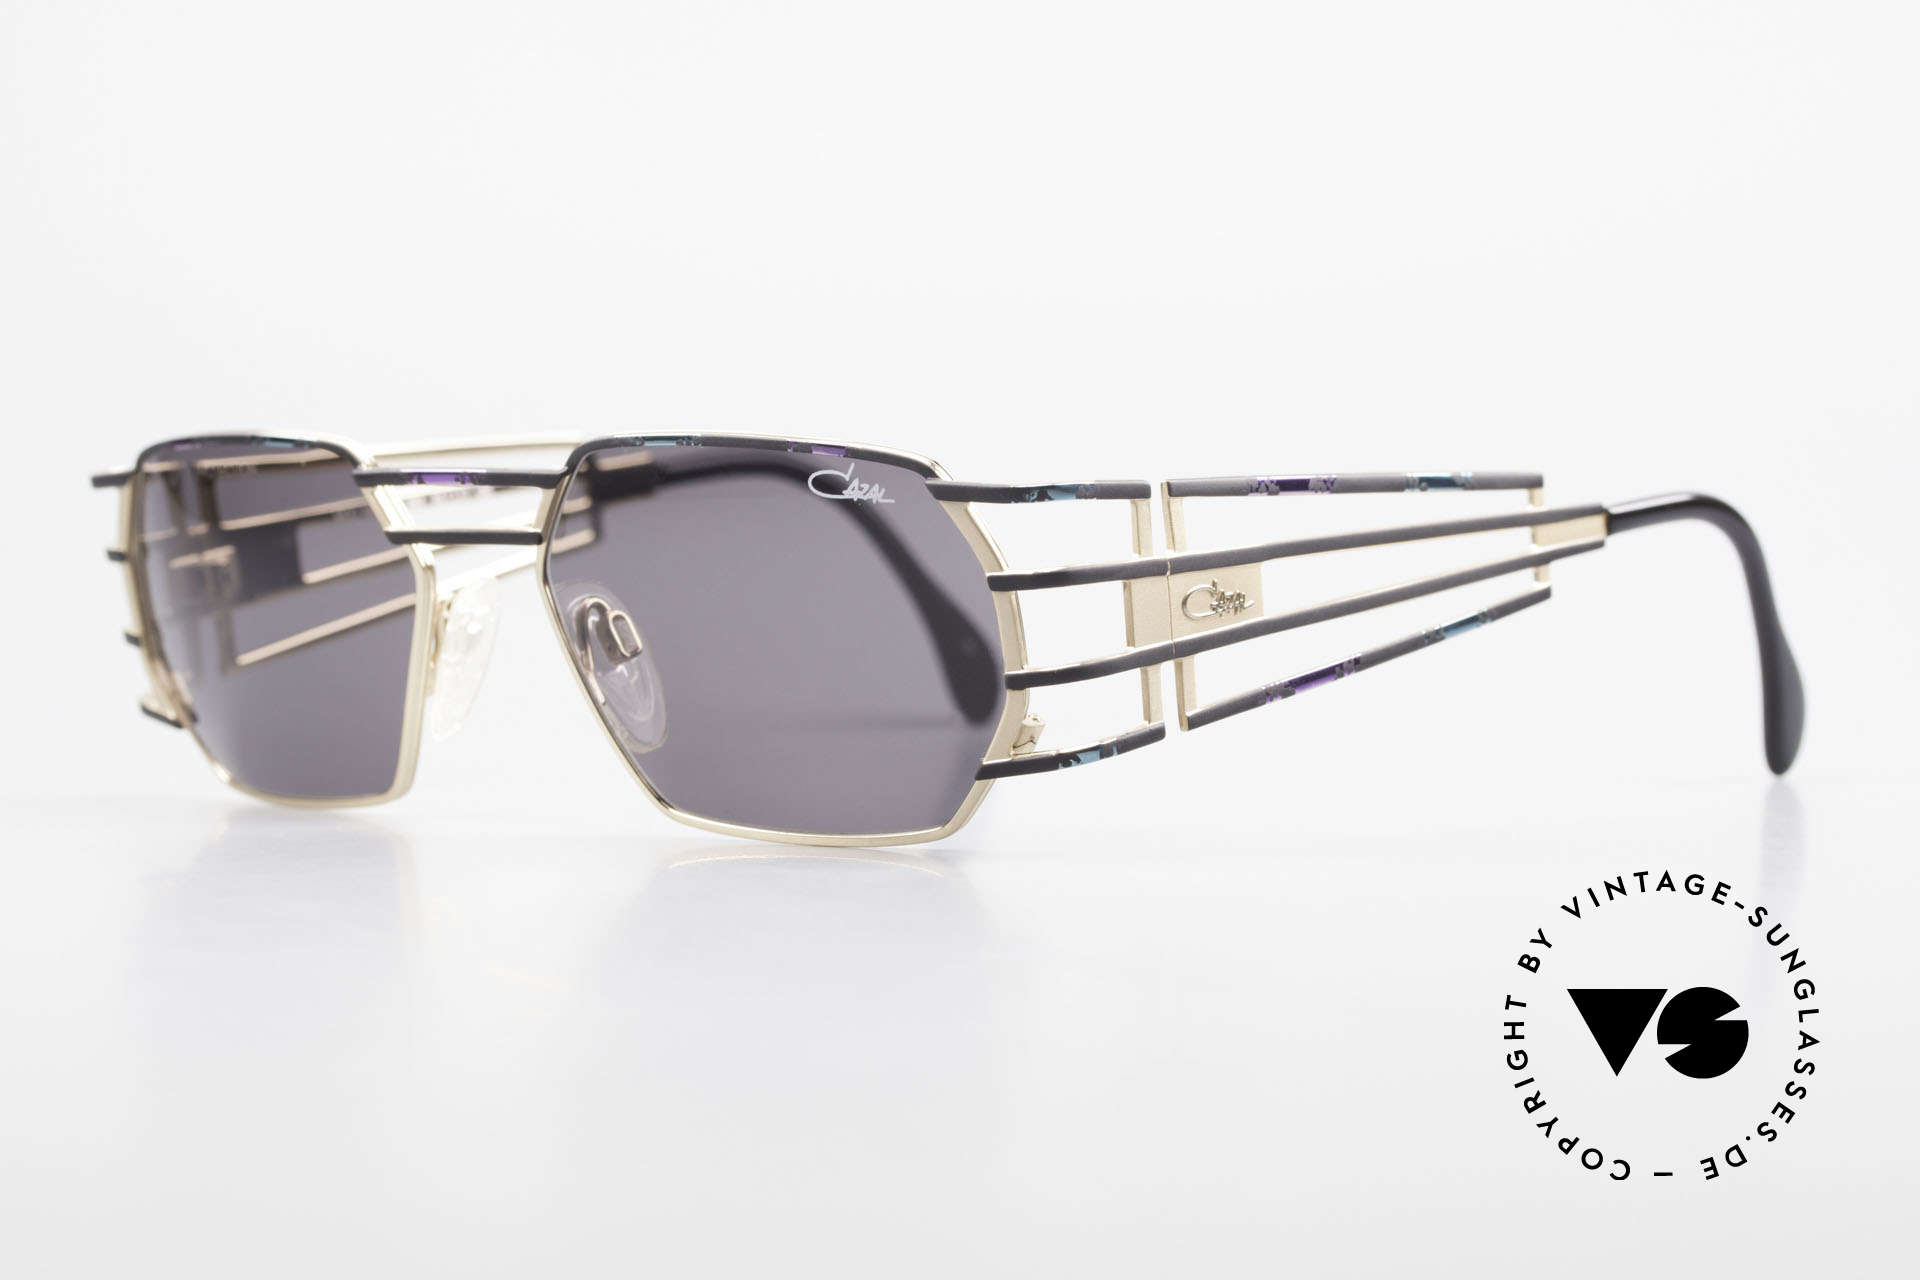 Cazal 980 90's Designer Sunglasses Unisex, exquisite 90's craftsmanship (made in Passau, Germany), Made for Men and Women